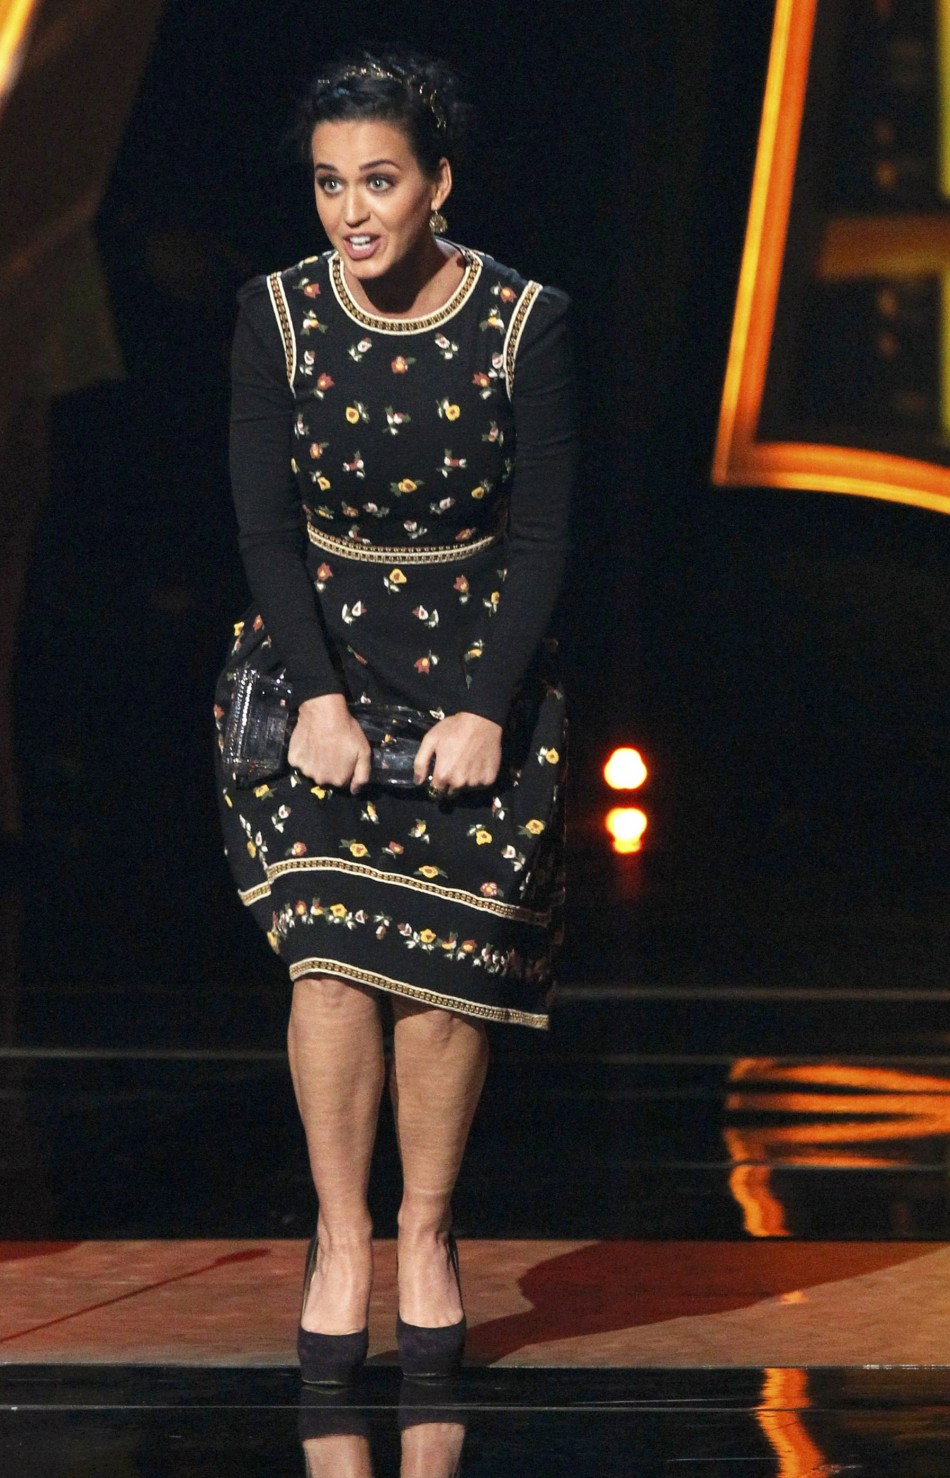 Katy Perry reacts after accepting the Favorite Pop Artist award at the 2013 Peoples Choice Awards in Los Angeles